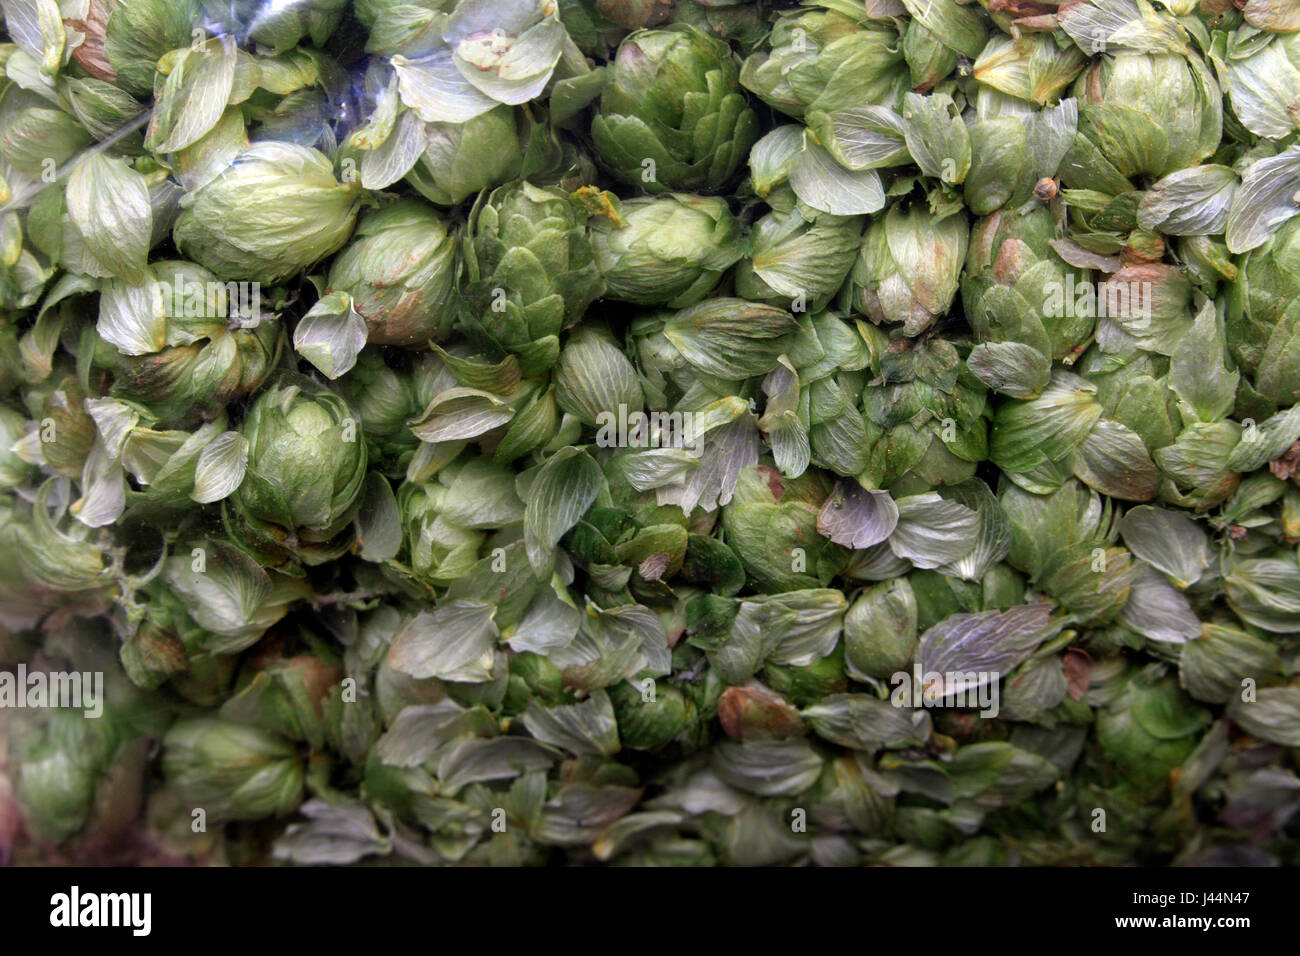 Picture by Tim Cuff - 26 October 2016 - Dried and bagged hops at Plant and Food, Motueka, Nelson, New Zealand: Stock Photo